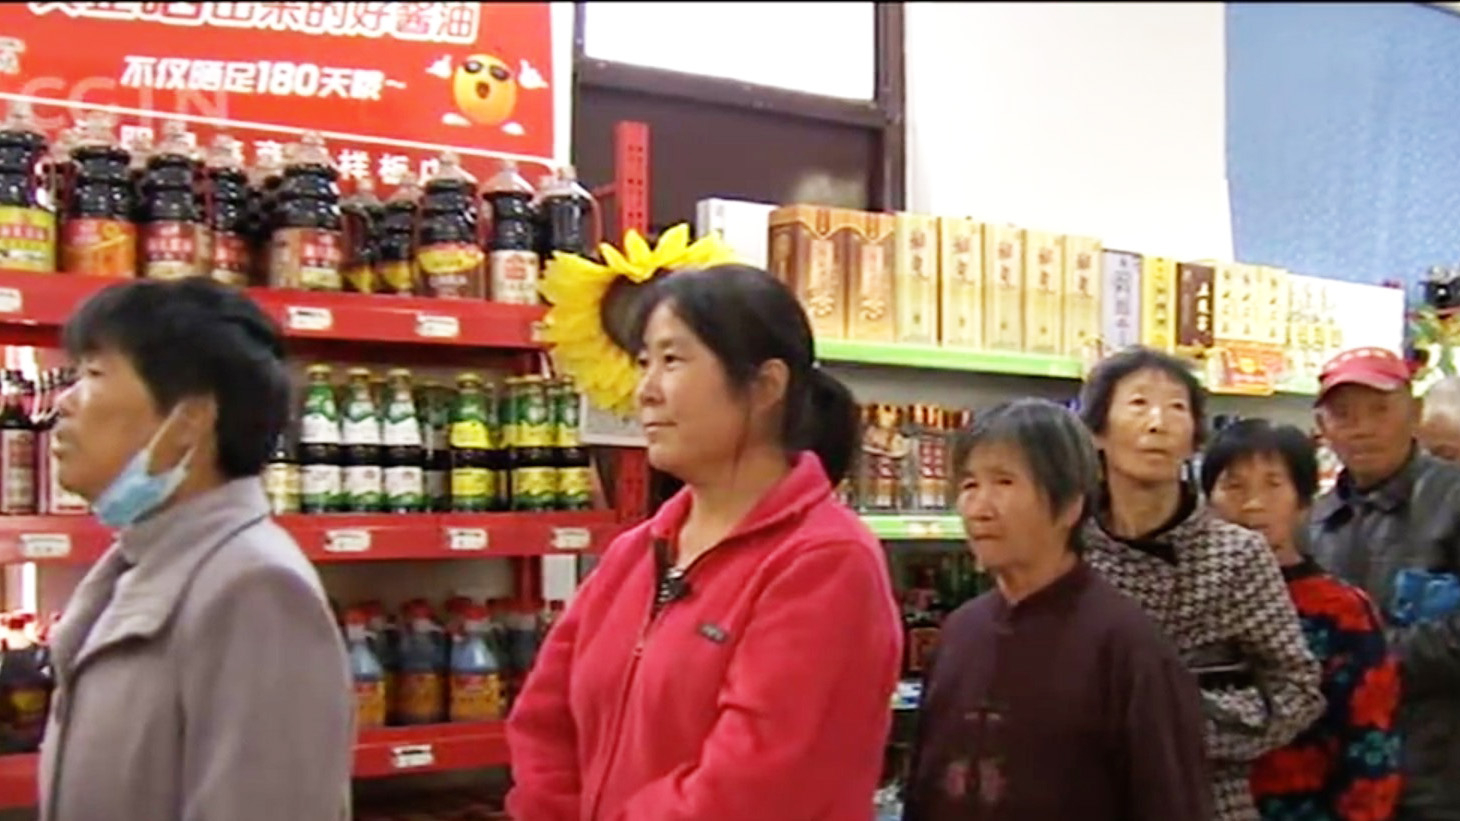 'Credit system' program helps alleviate poverty in central China